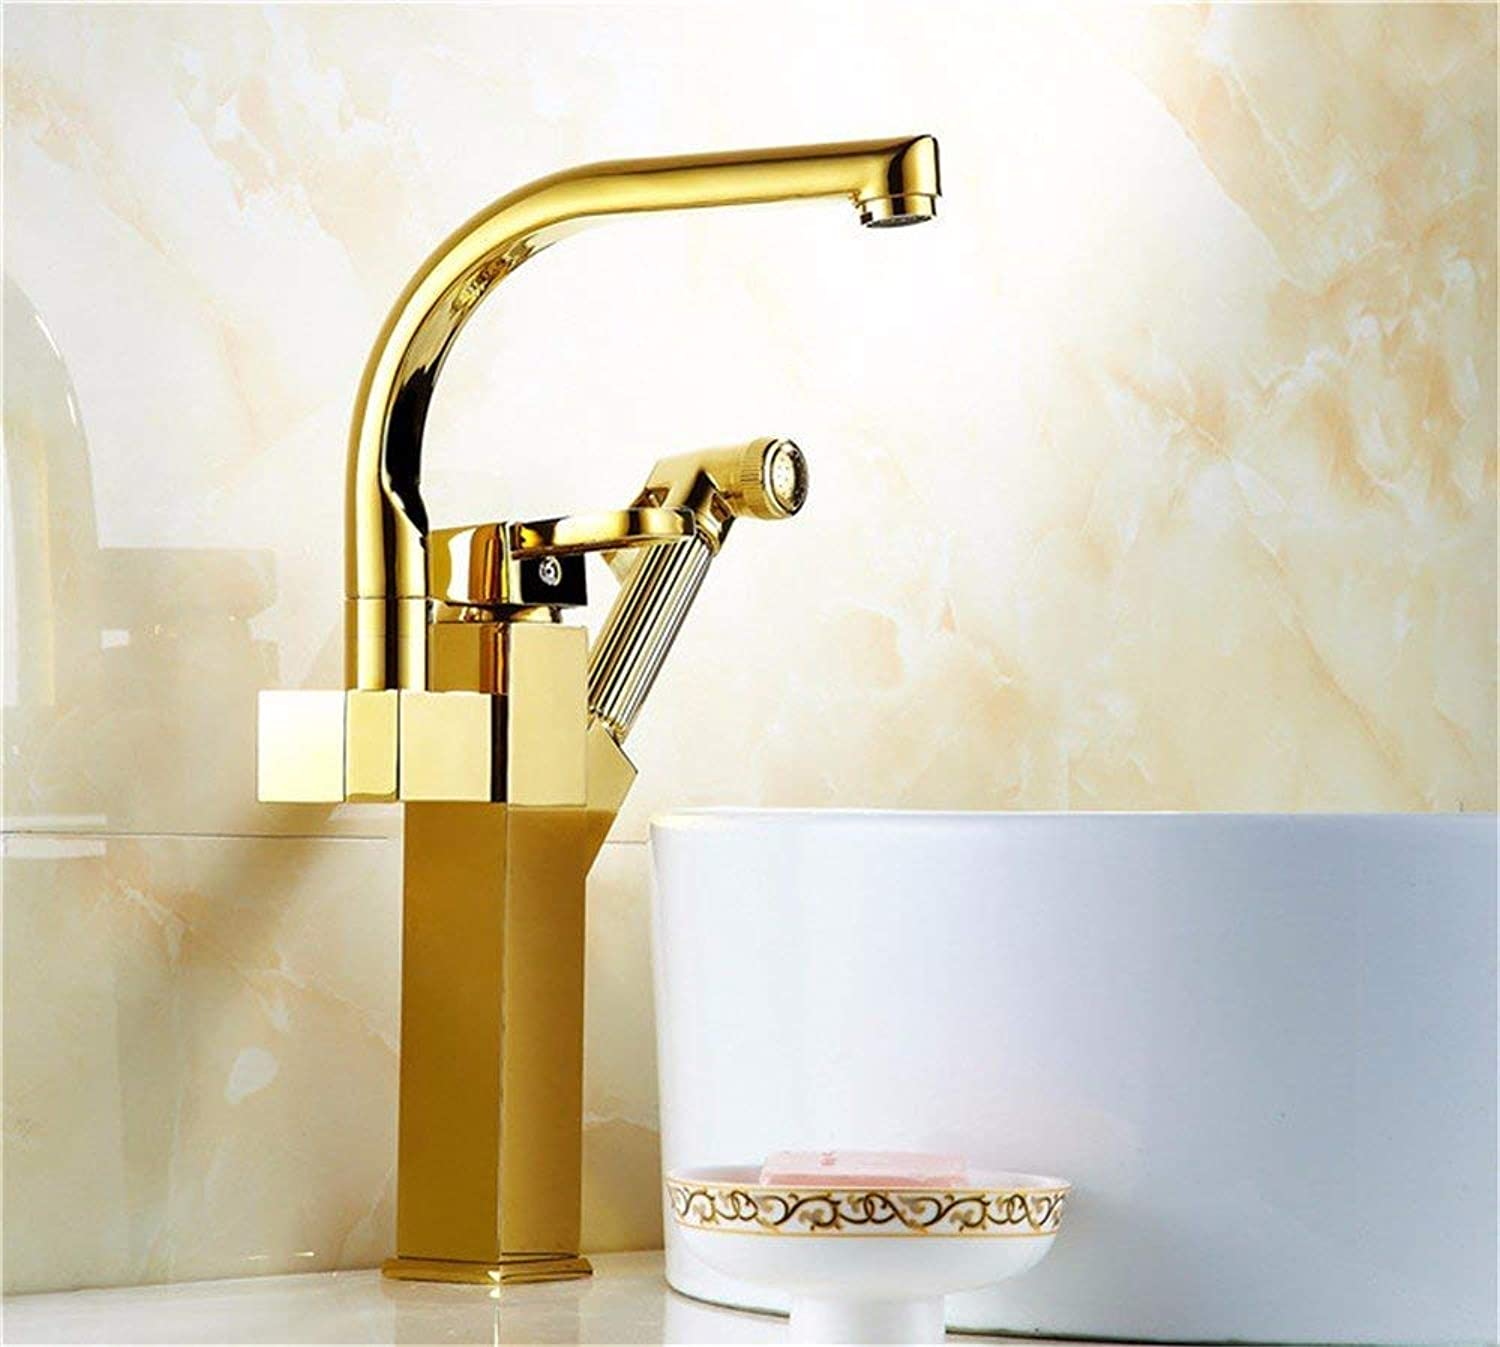 Modern copper gold pull basin bathroom hot and cold water faucet redatable washable head (color   -, Size   -)